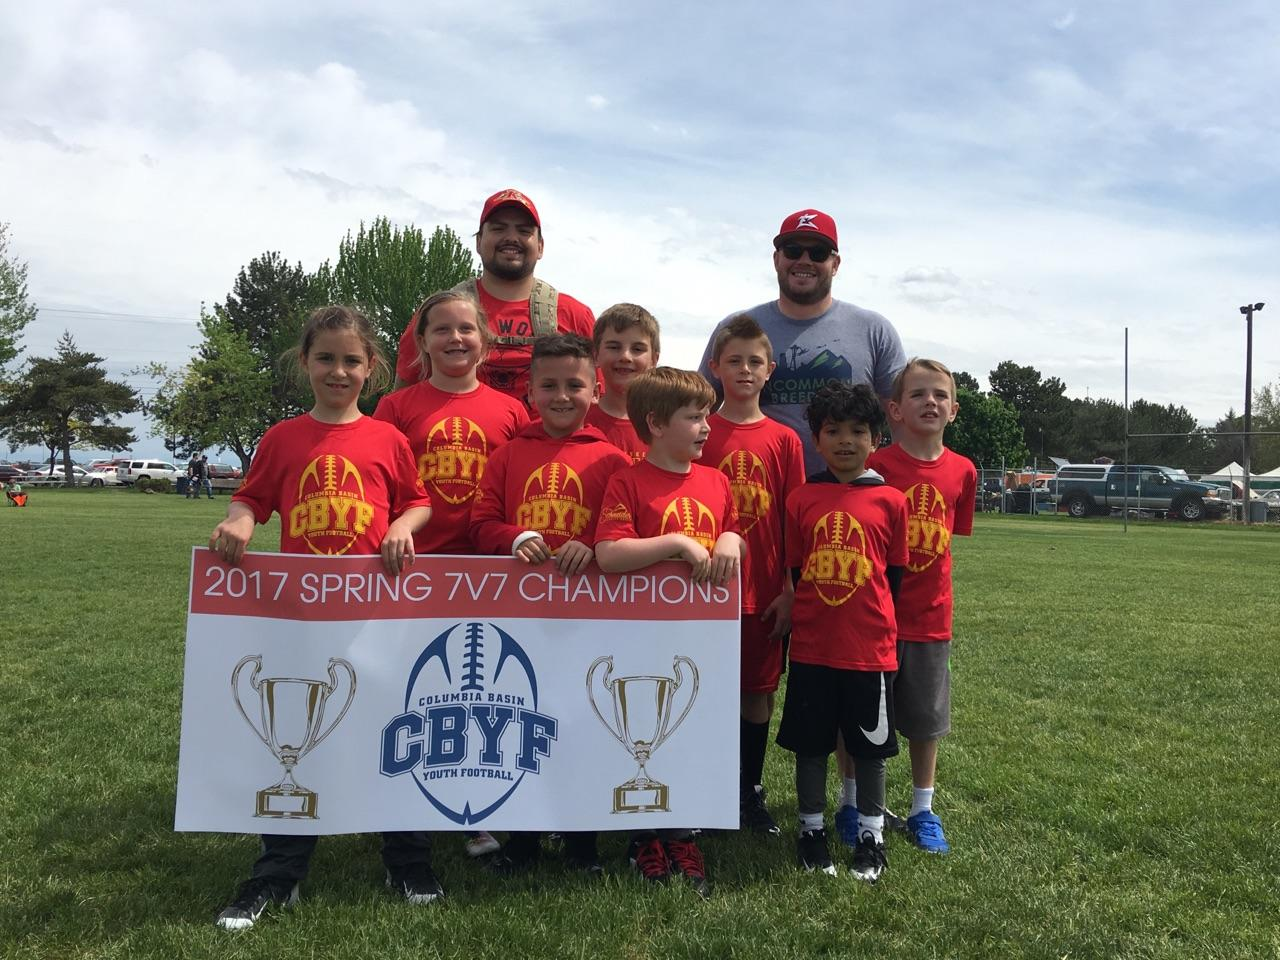 BRAVES RED WIN THE 1ST/2ND GRADE CBYF 7V7 TITLE